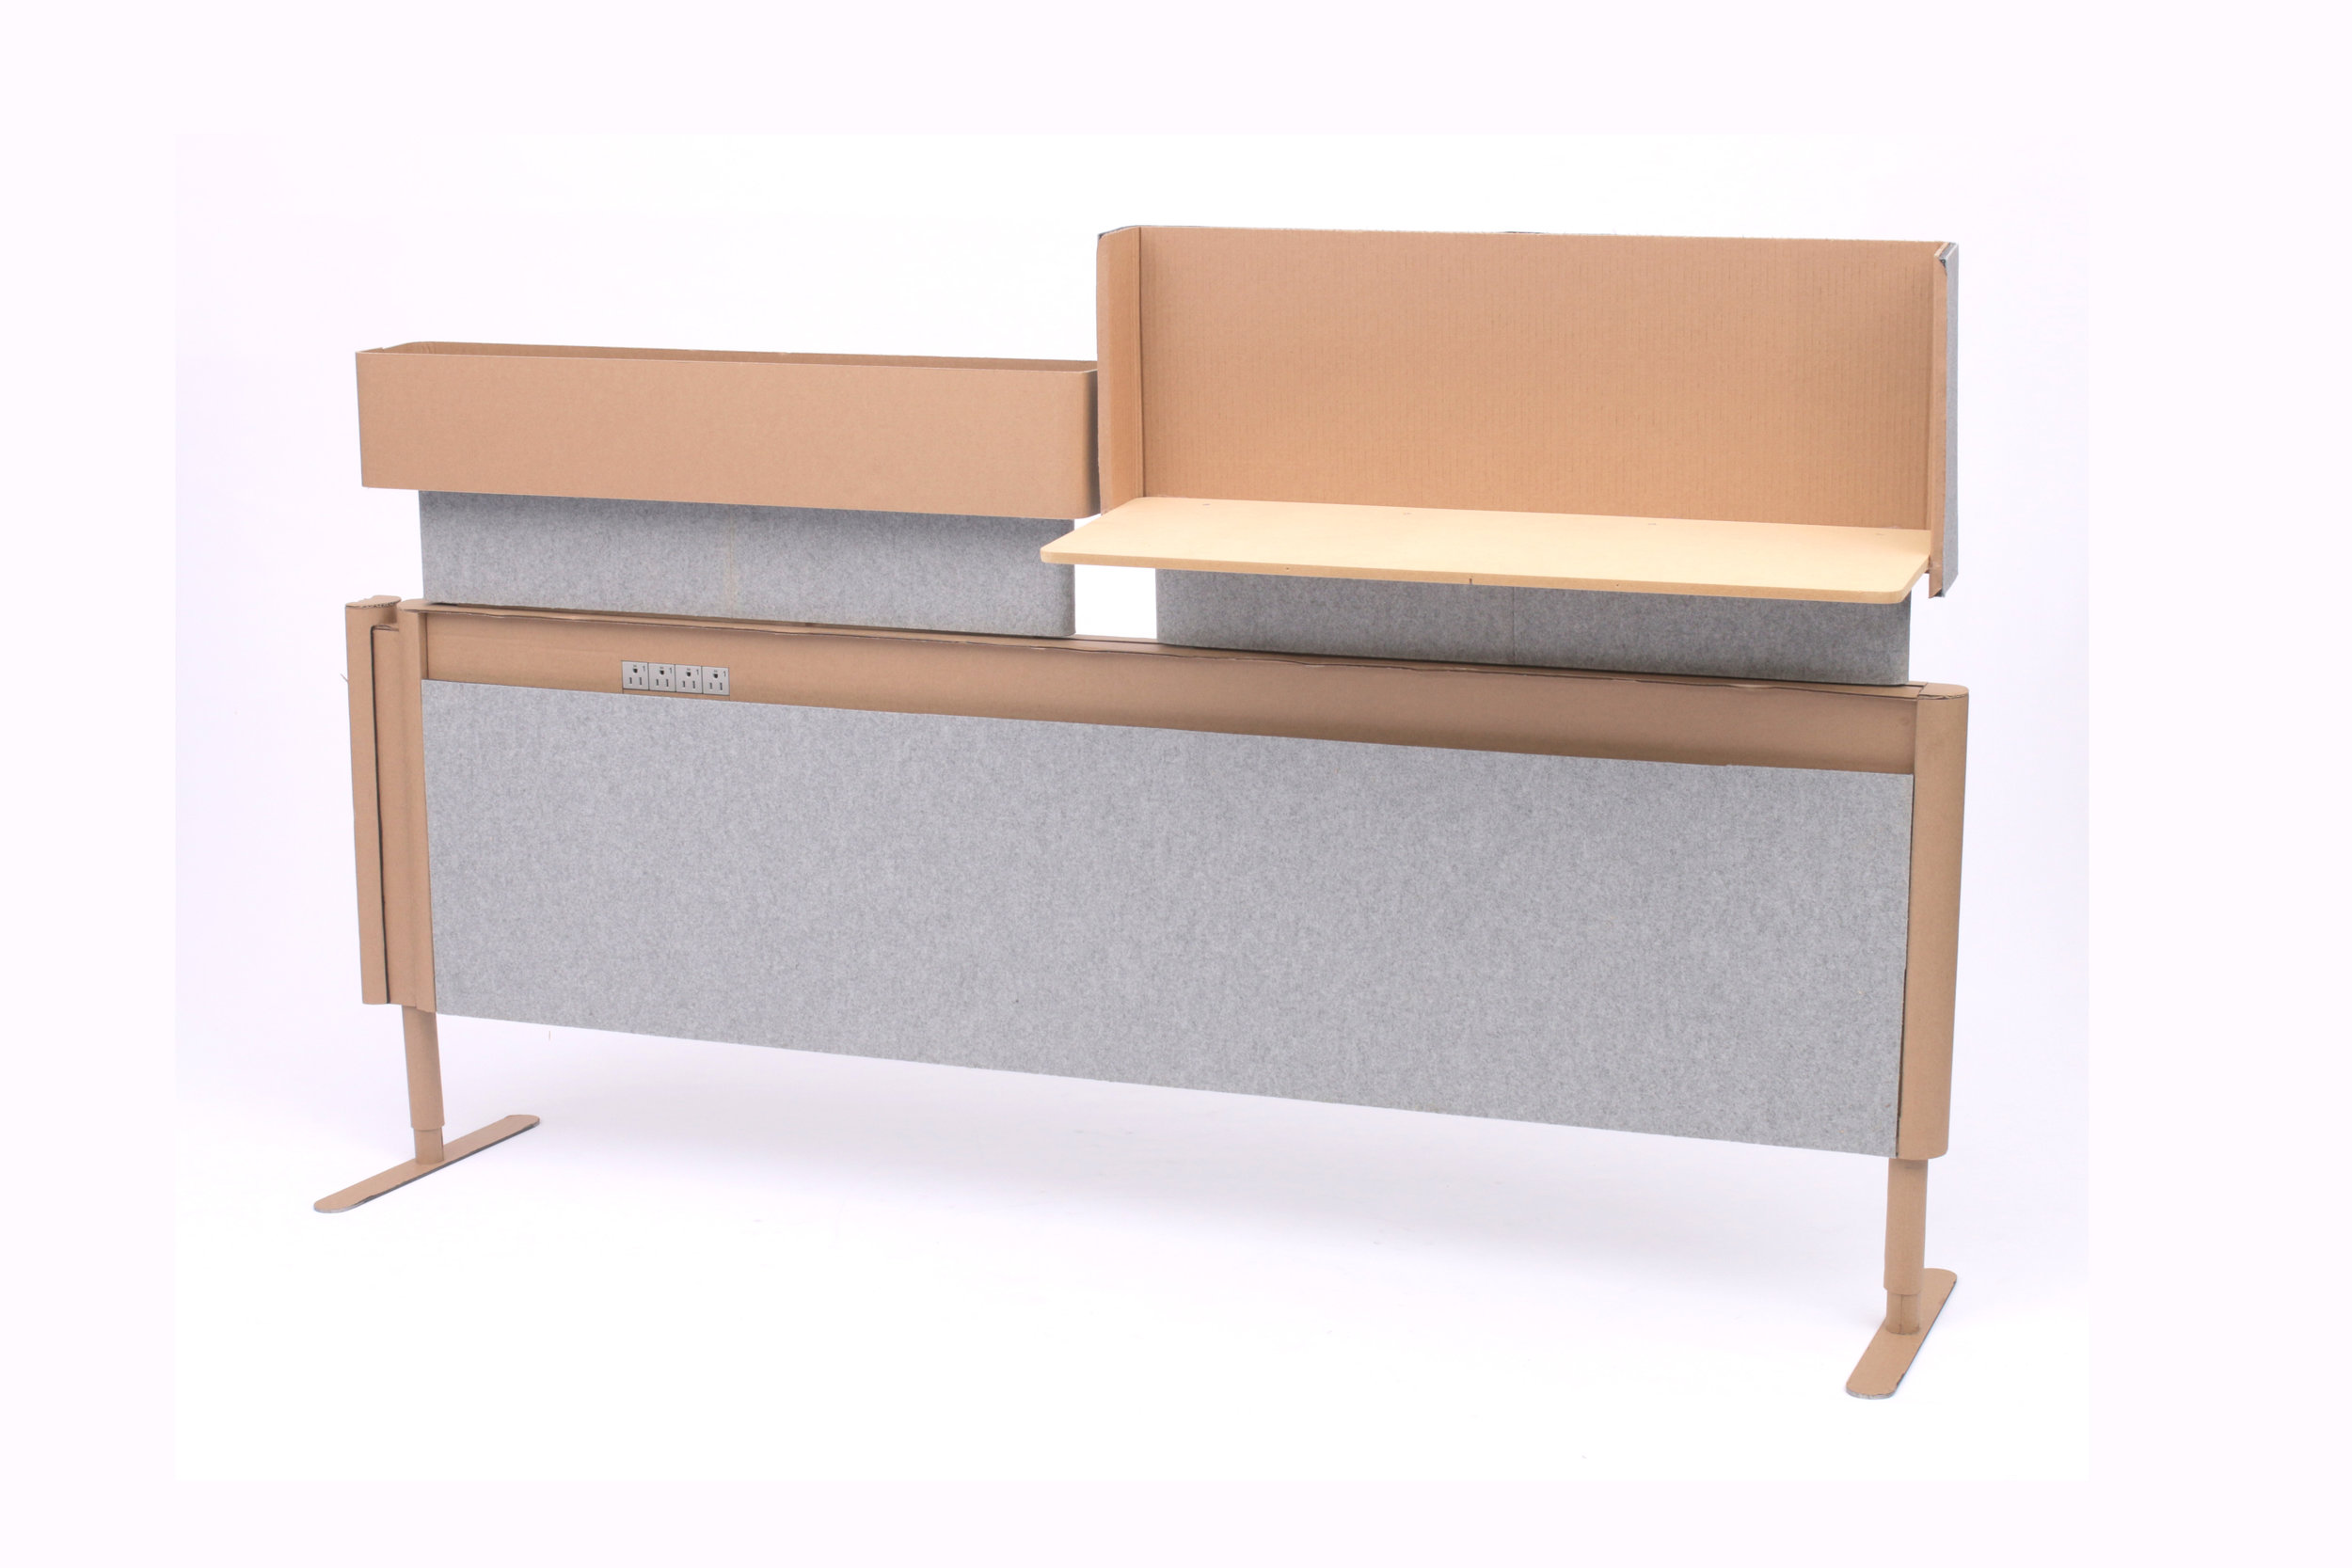 Cloud9 Rail in cardboard and recycled PET felt